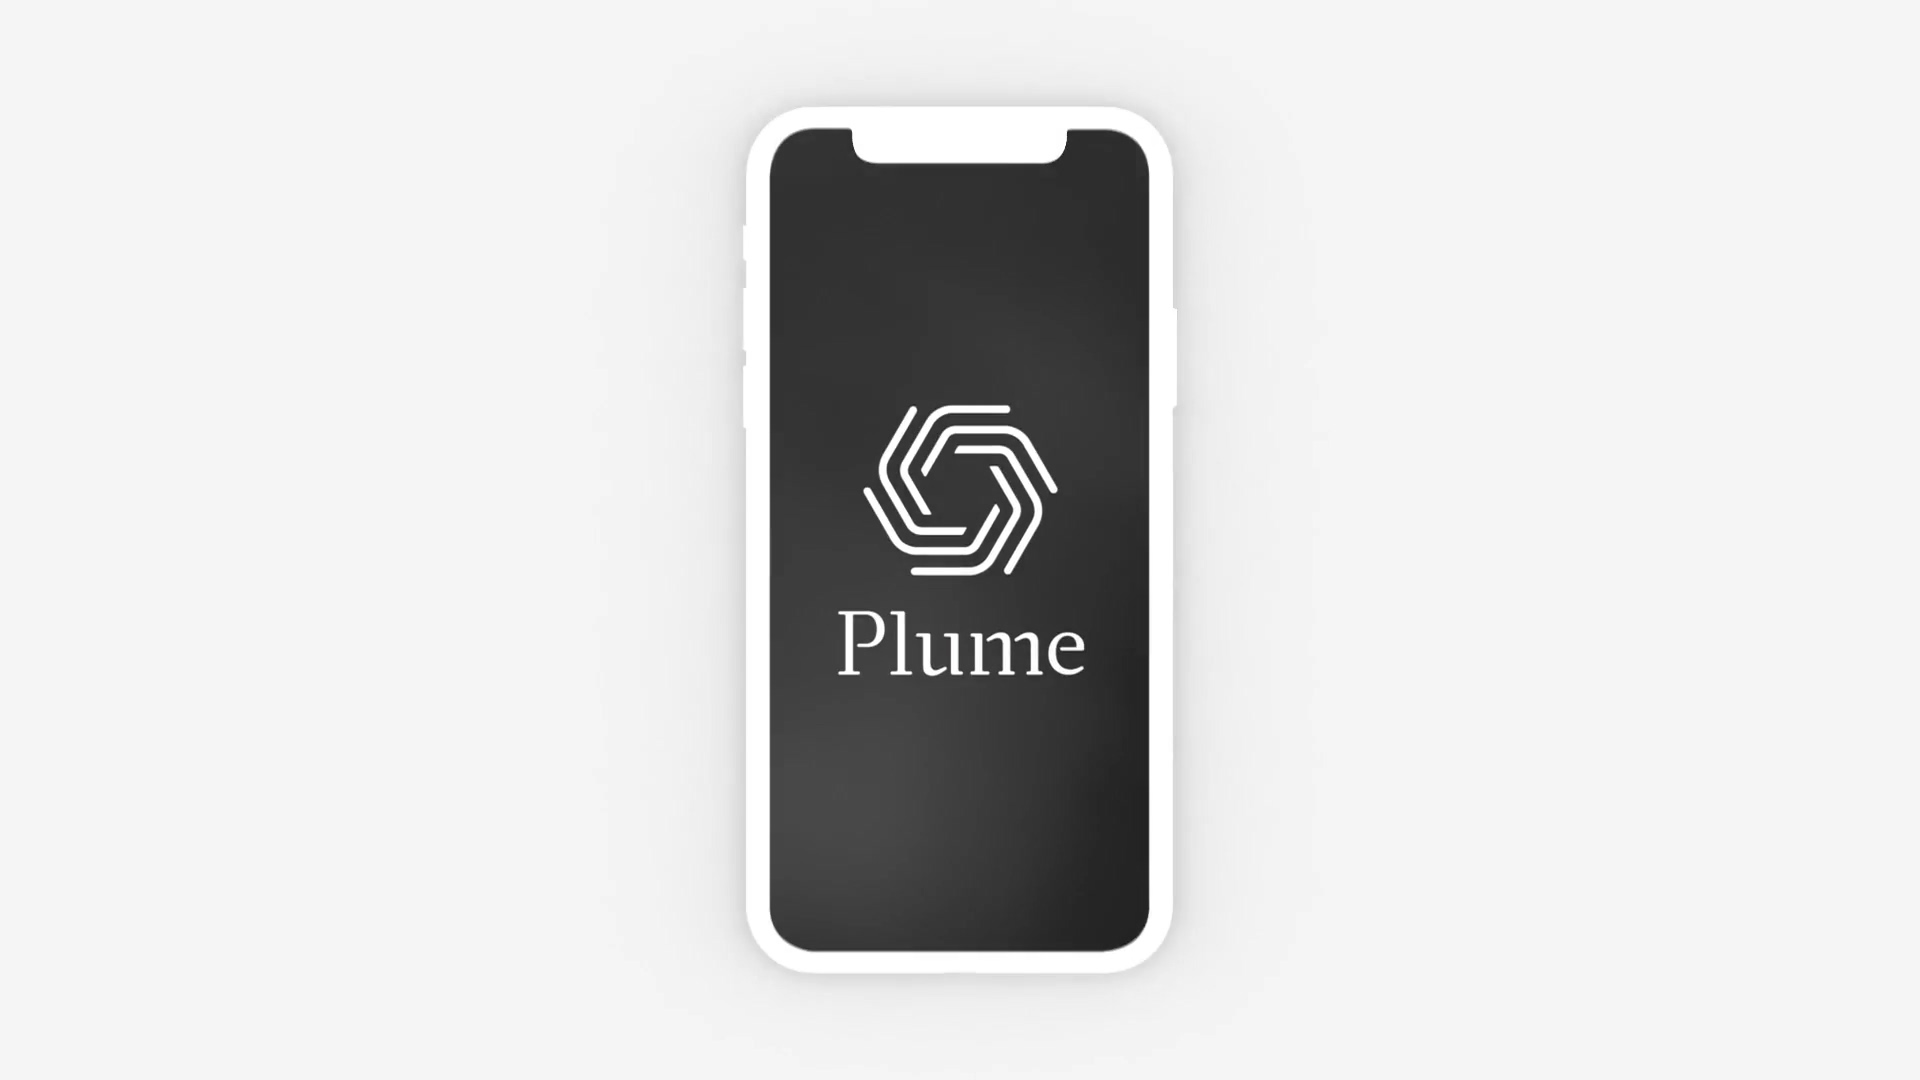 Plume App Experience